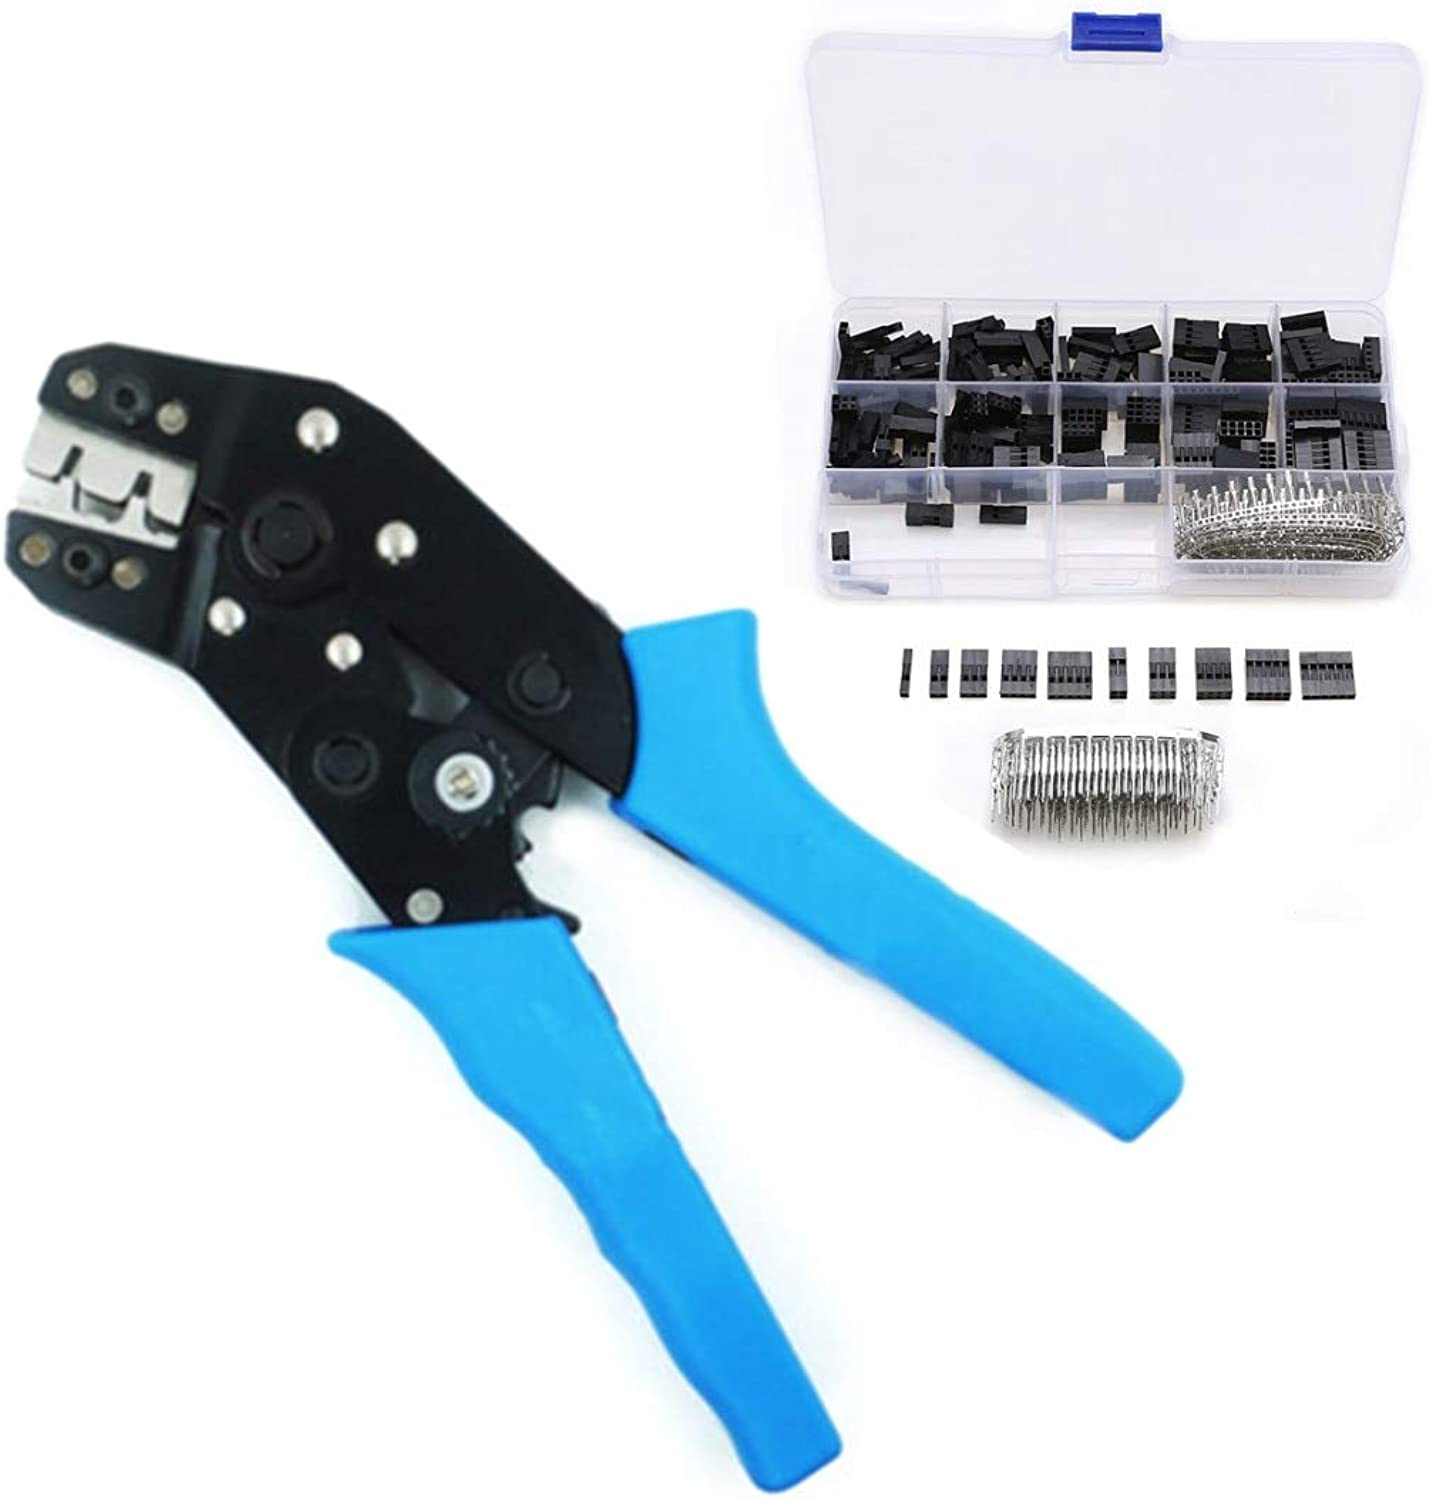 Mayitr Crimping Pliers 610pcs 2.54mm Electric Wire Jumper Housing Pin Connector Dupont Terminal Hand Tools